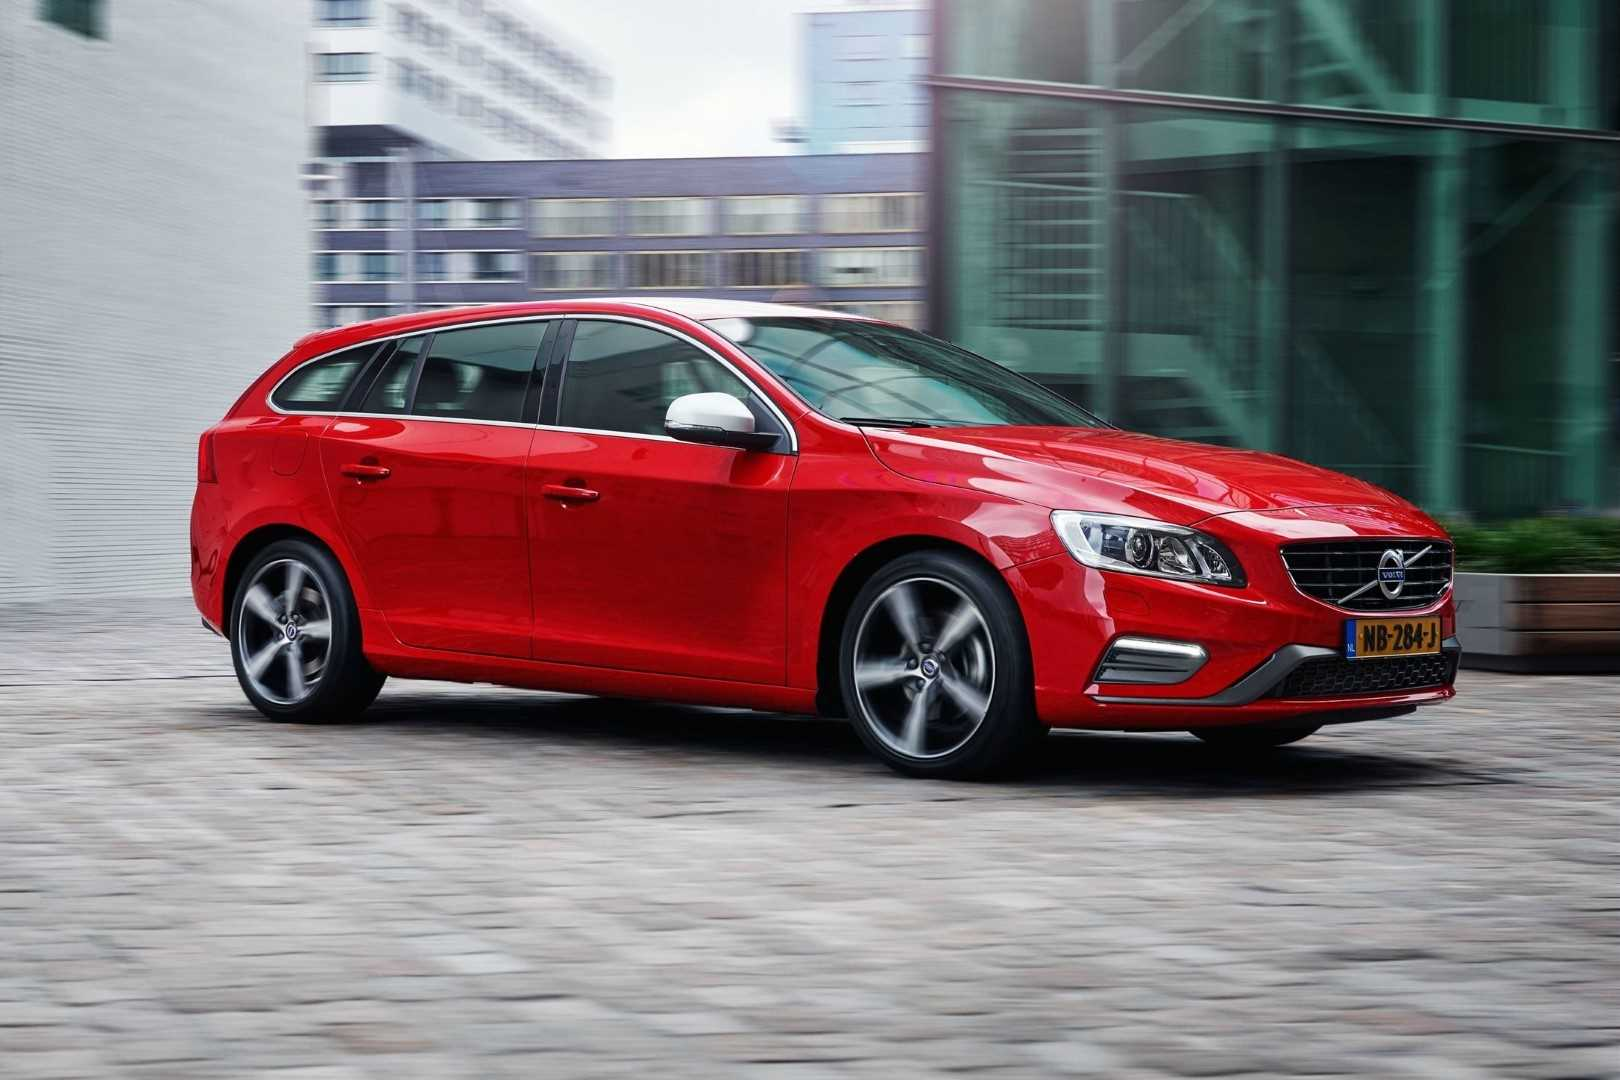 Volvo V60 Business Sport 2017